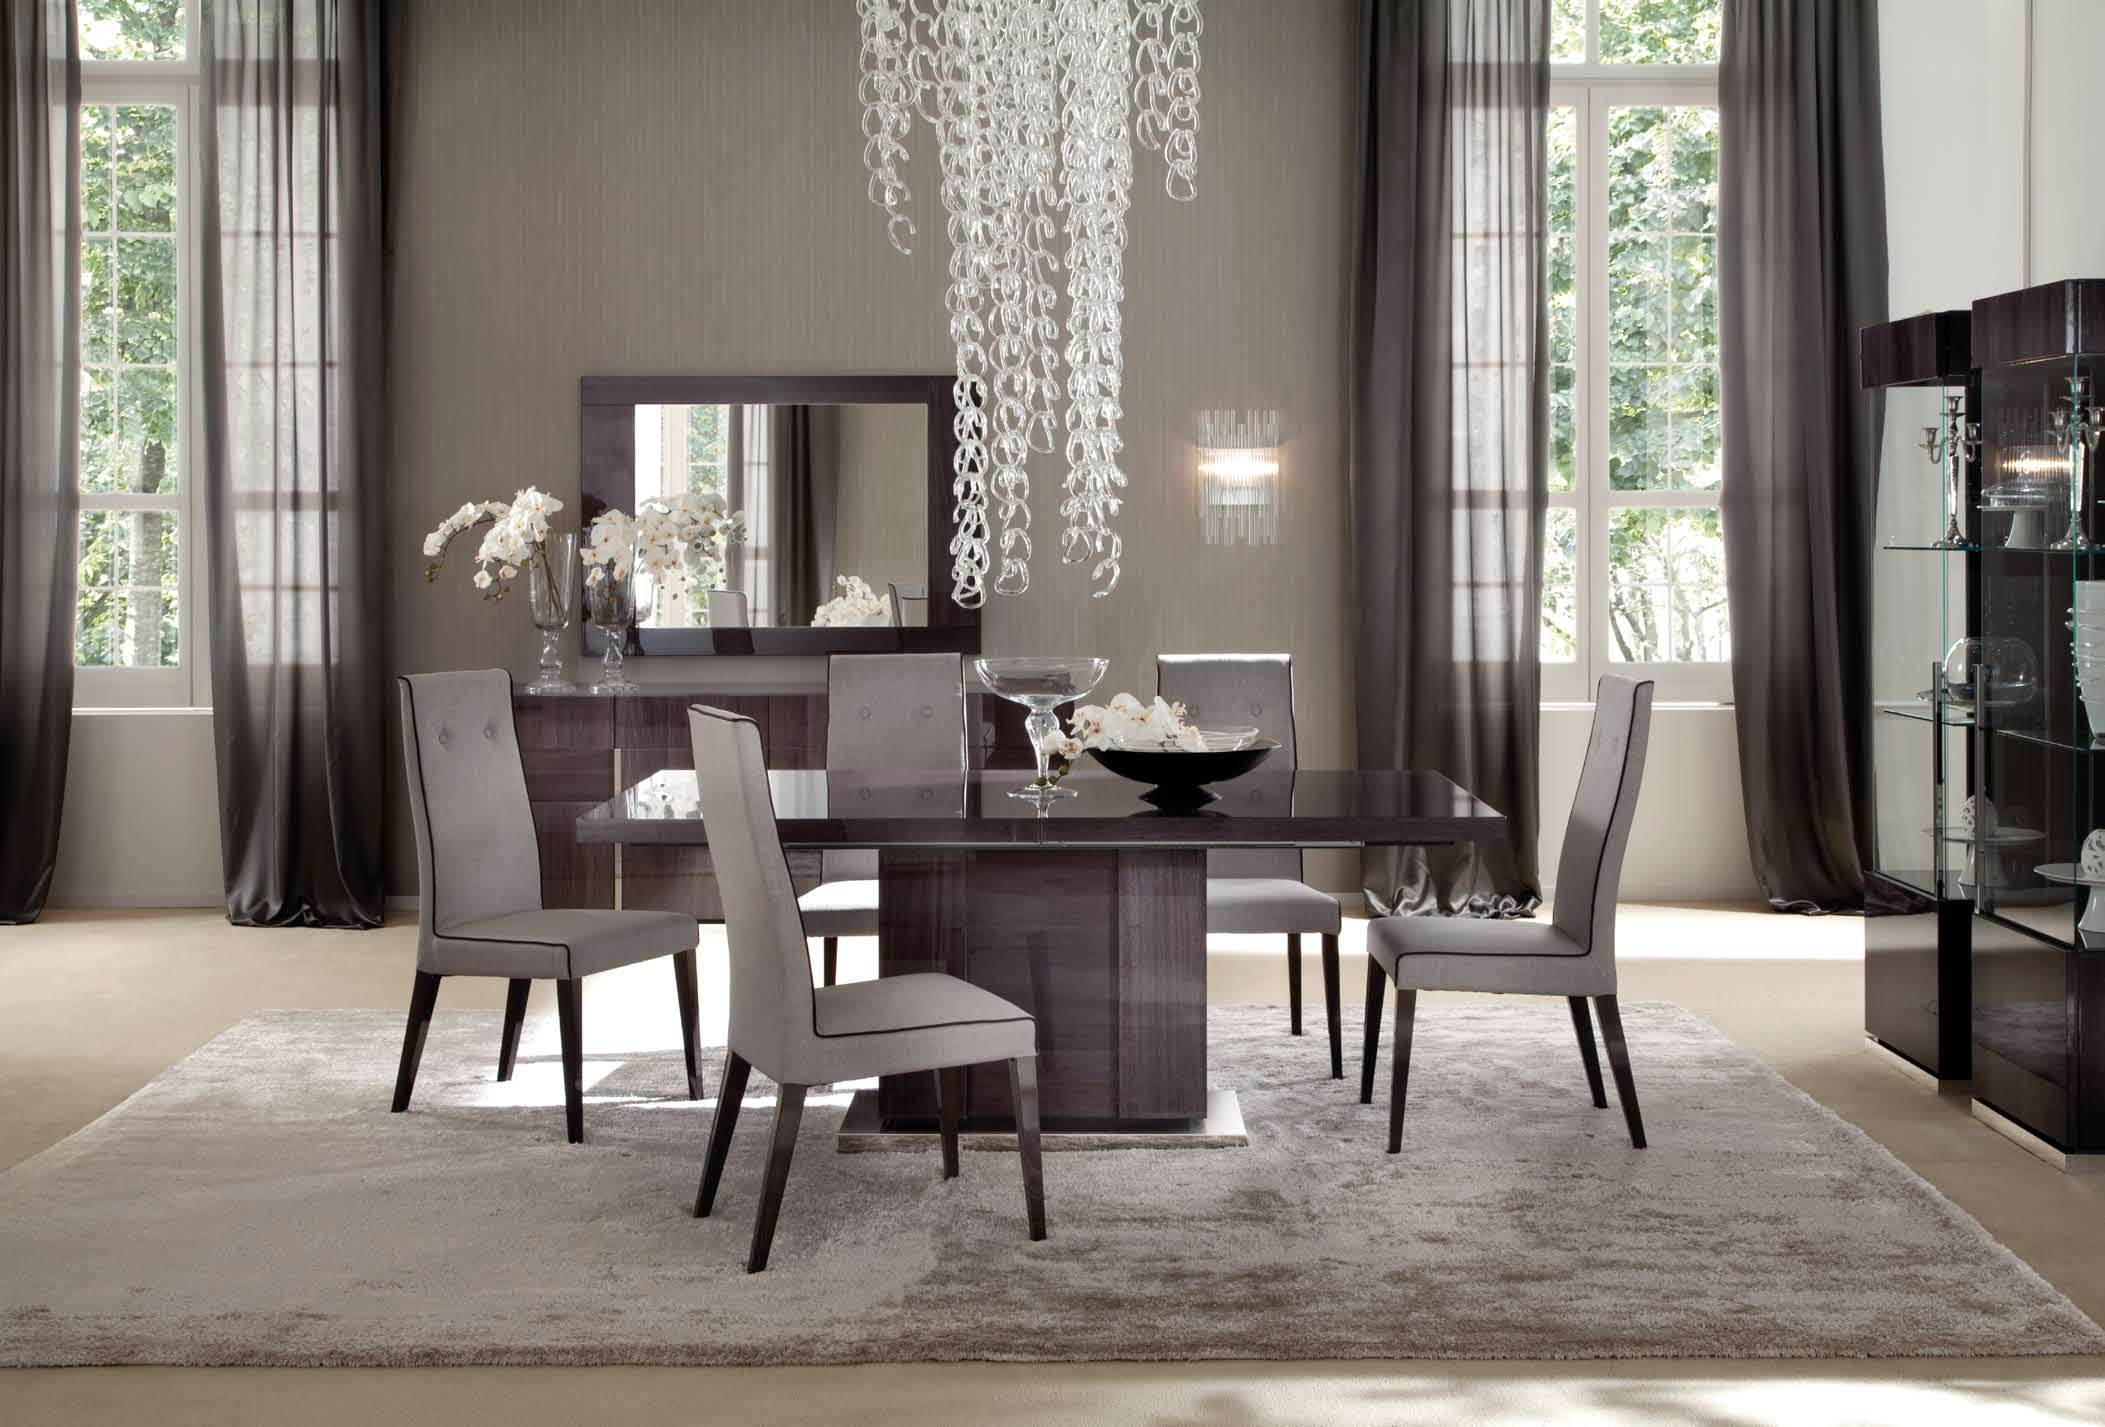 Dining Room Contemporary Endearing Contemporary Dining Room Design Ideas Remodels Photos 30 Modern Decorating Design